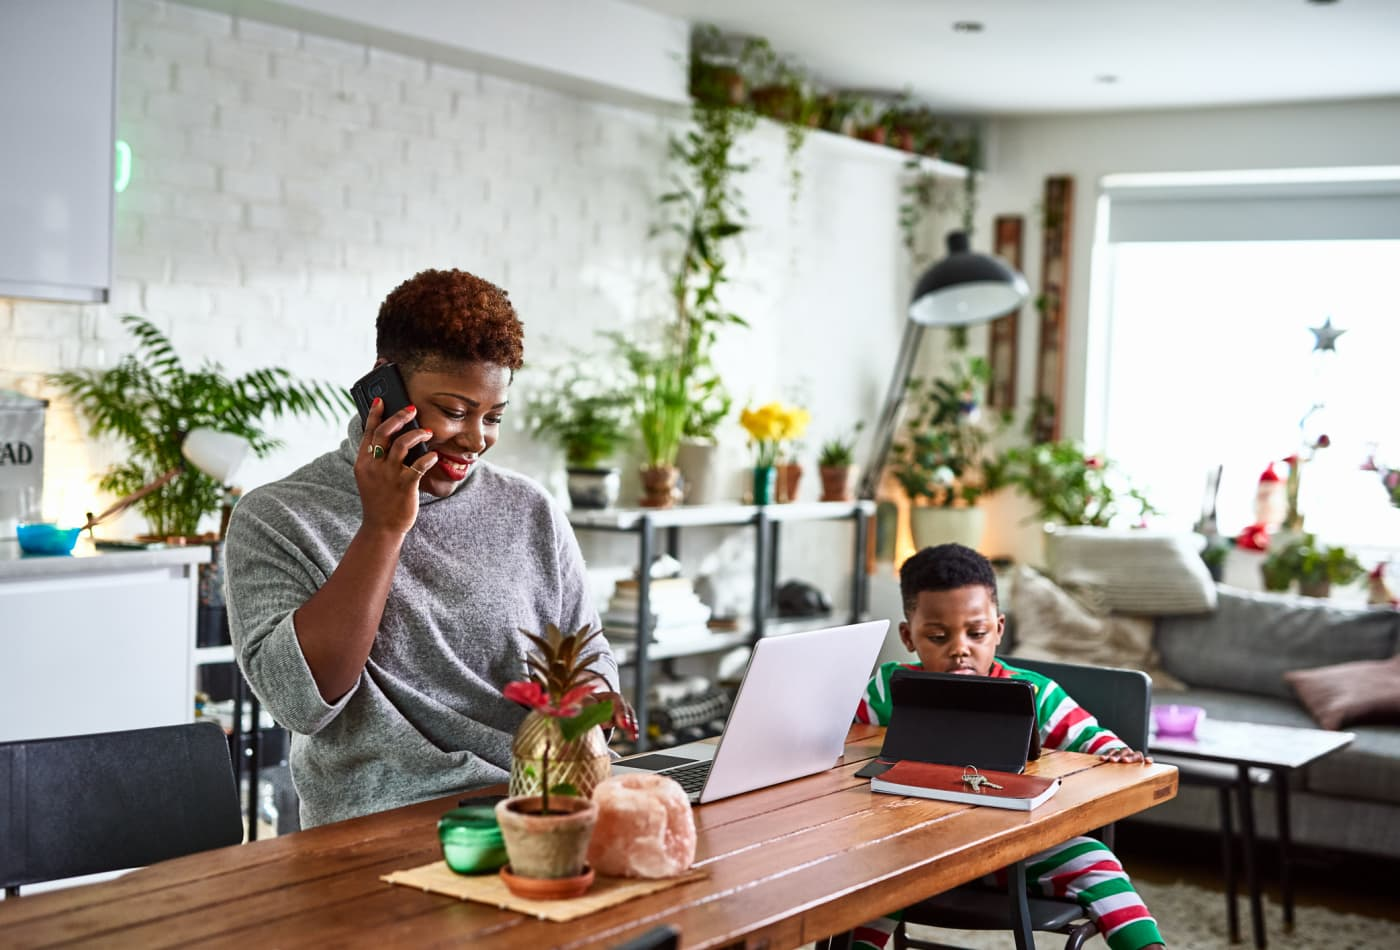 Grappling with childcare while working from home? How employers plan to help